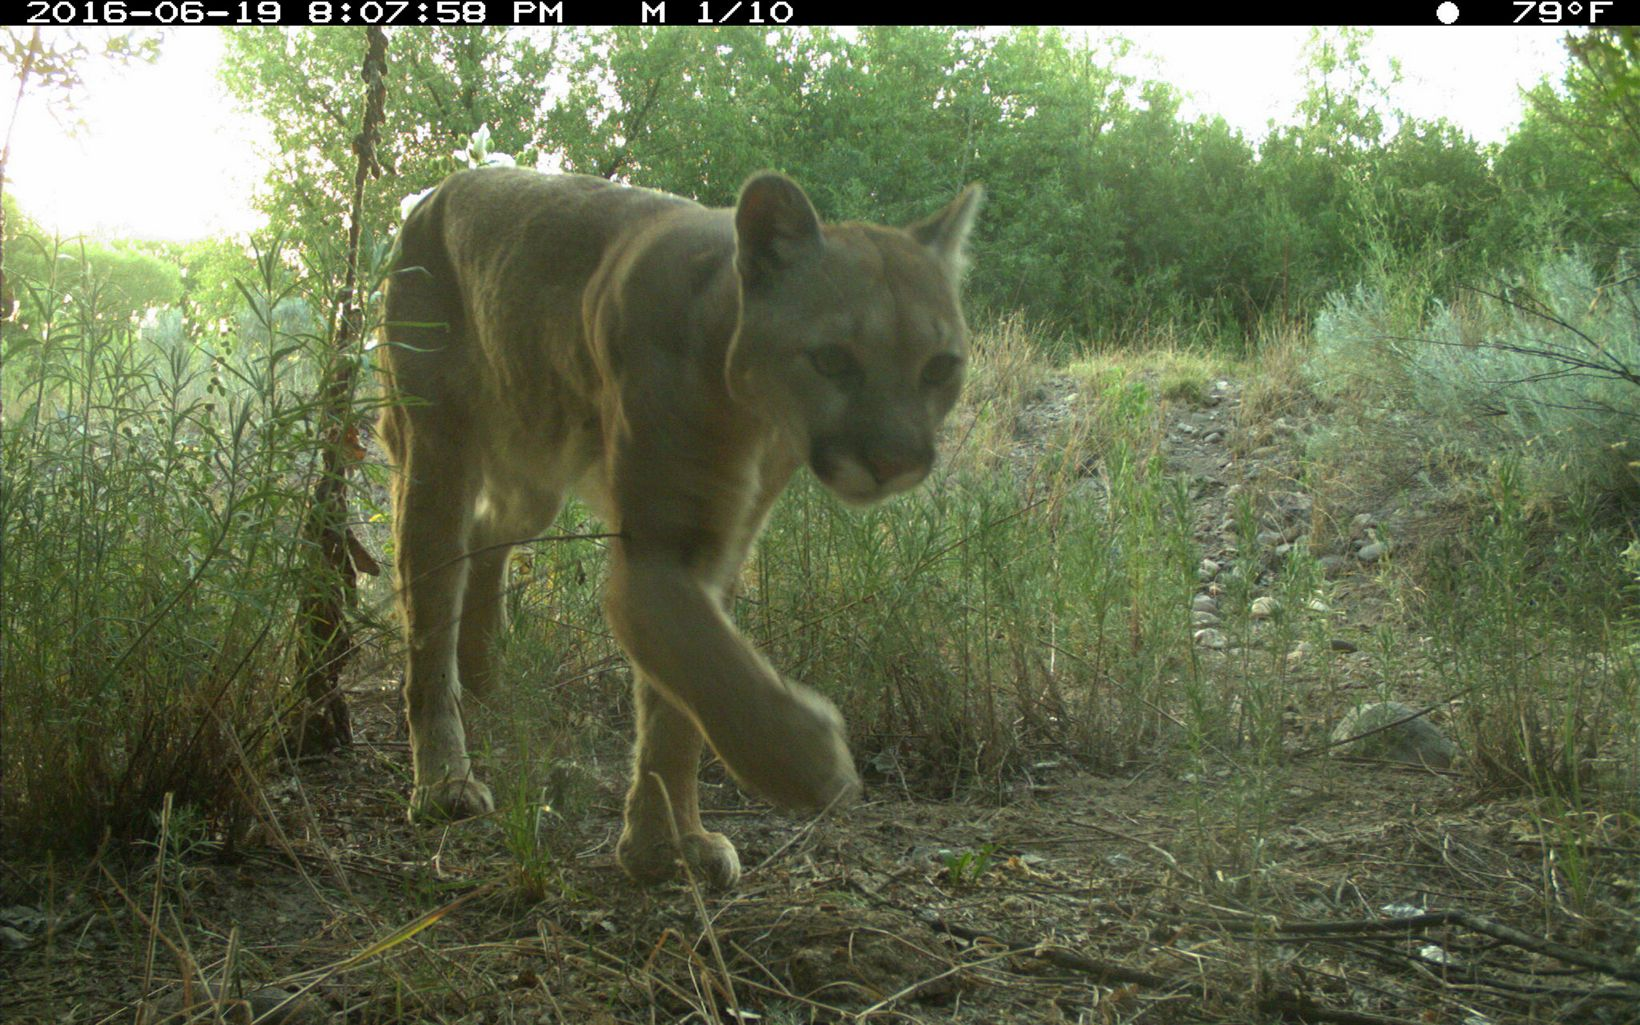 Mountain lion via preserve trail motion sensor camera